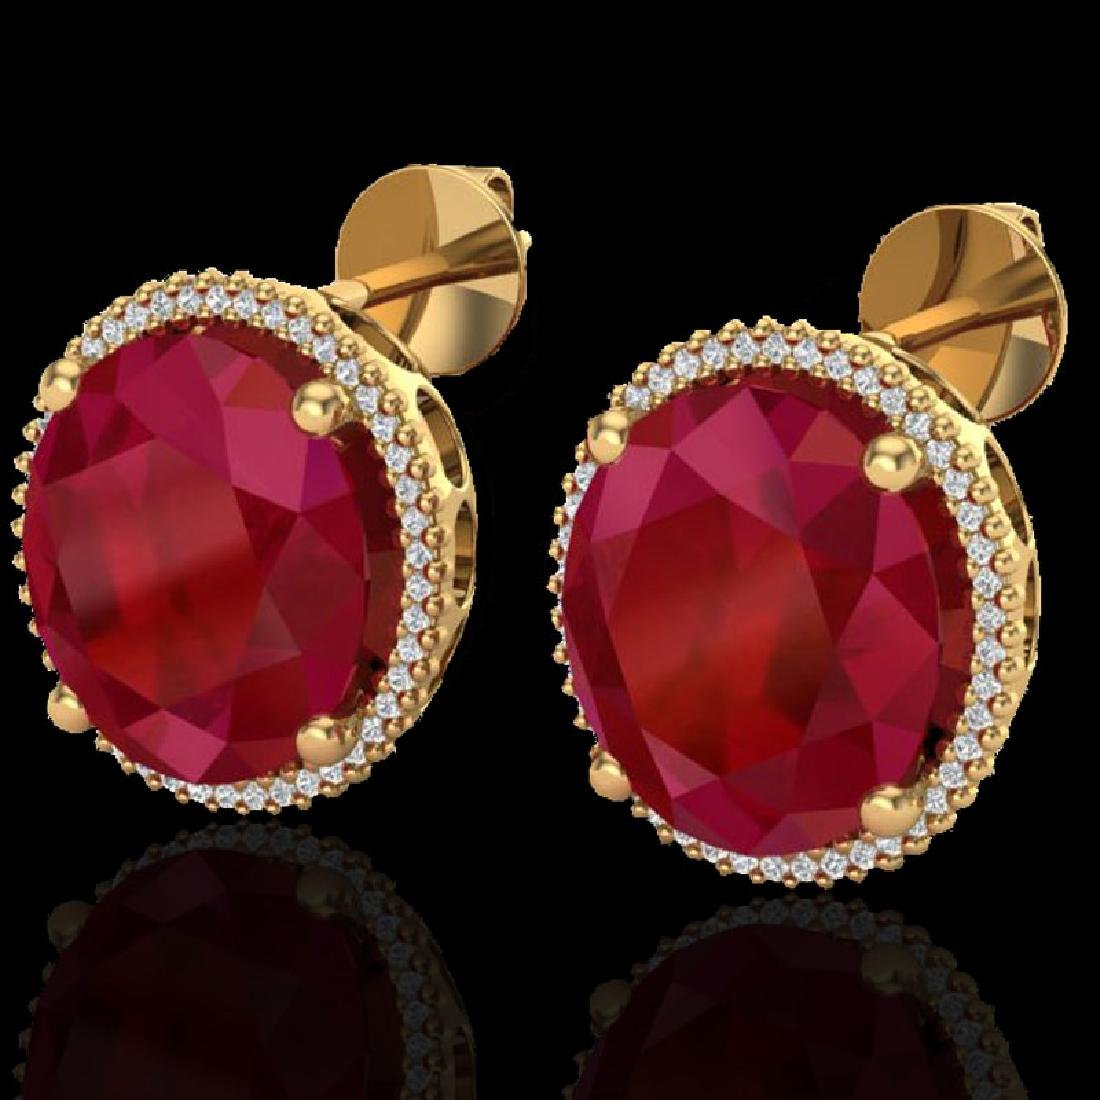 25 CTW Ruby & Micro Pave VS/SI Diamond Halo Earrings